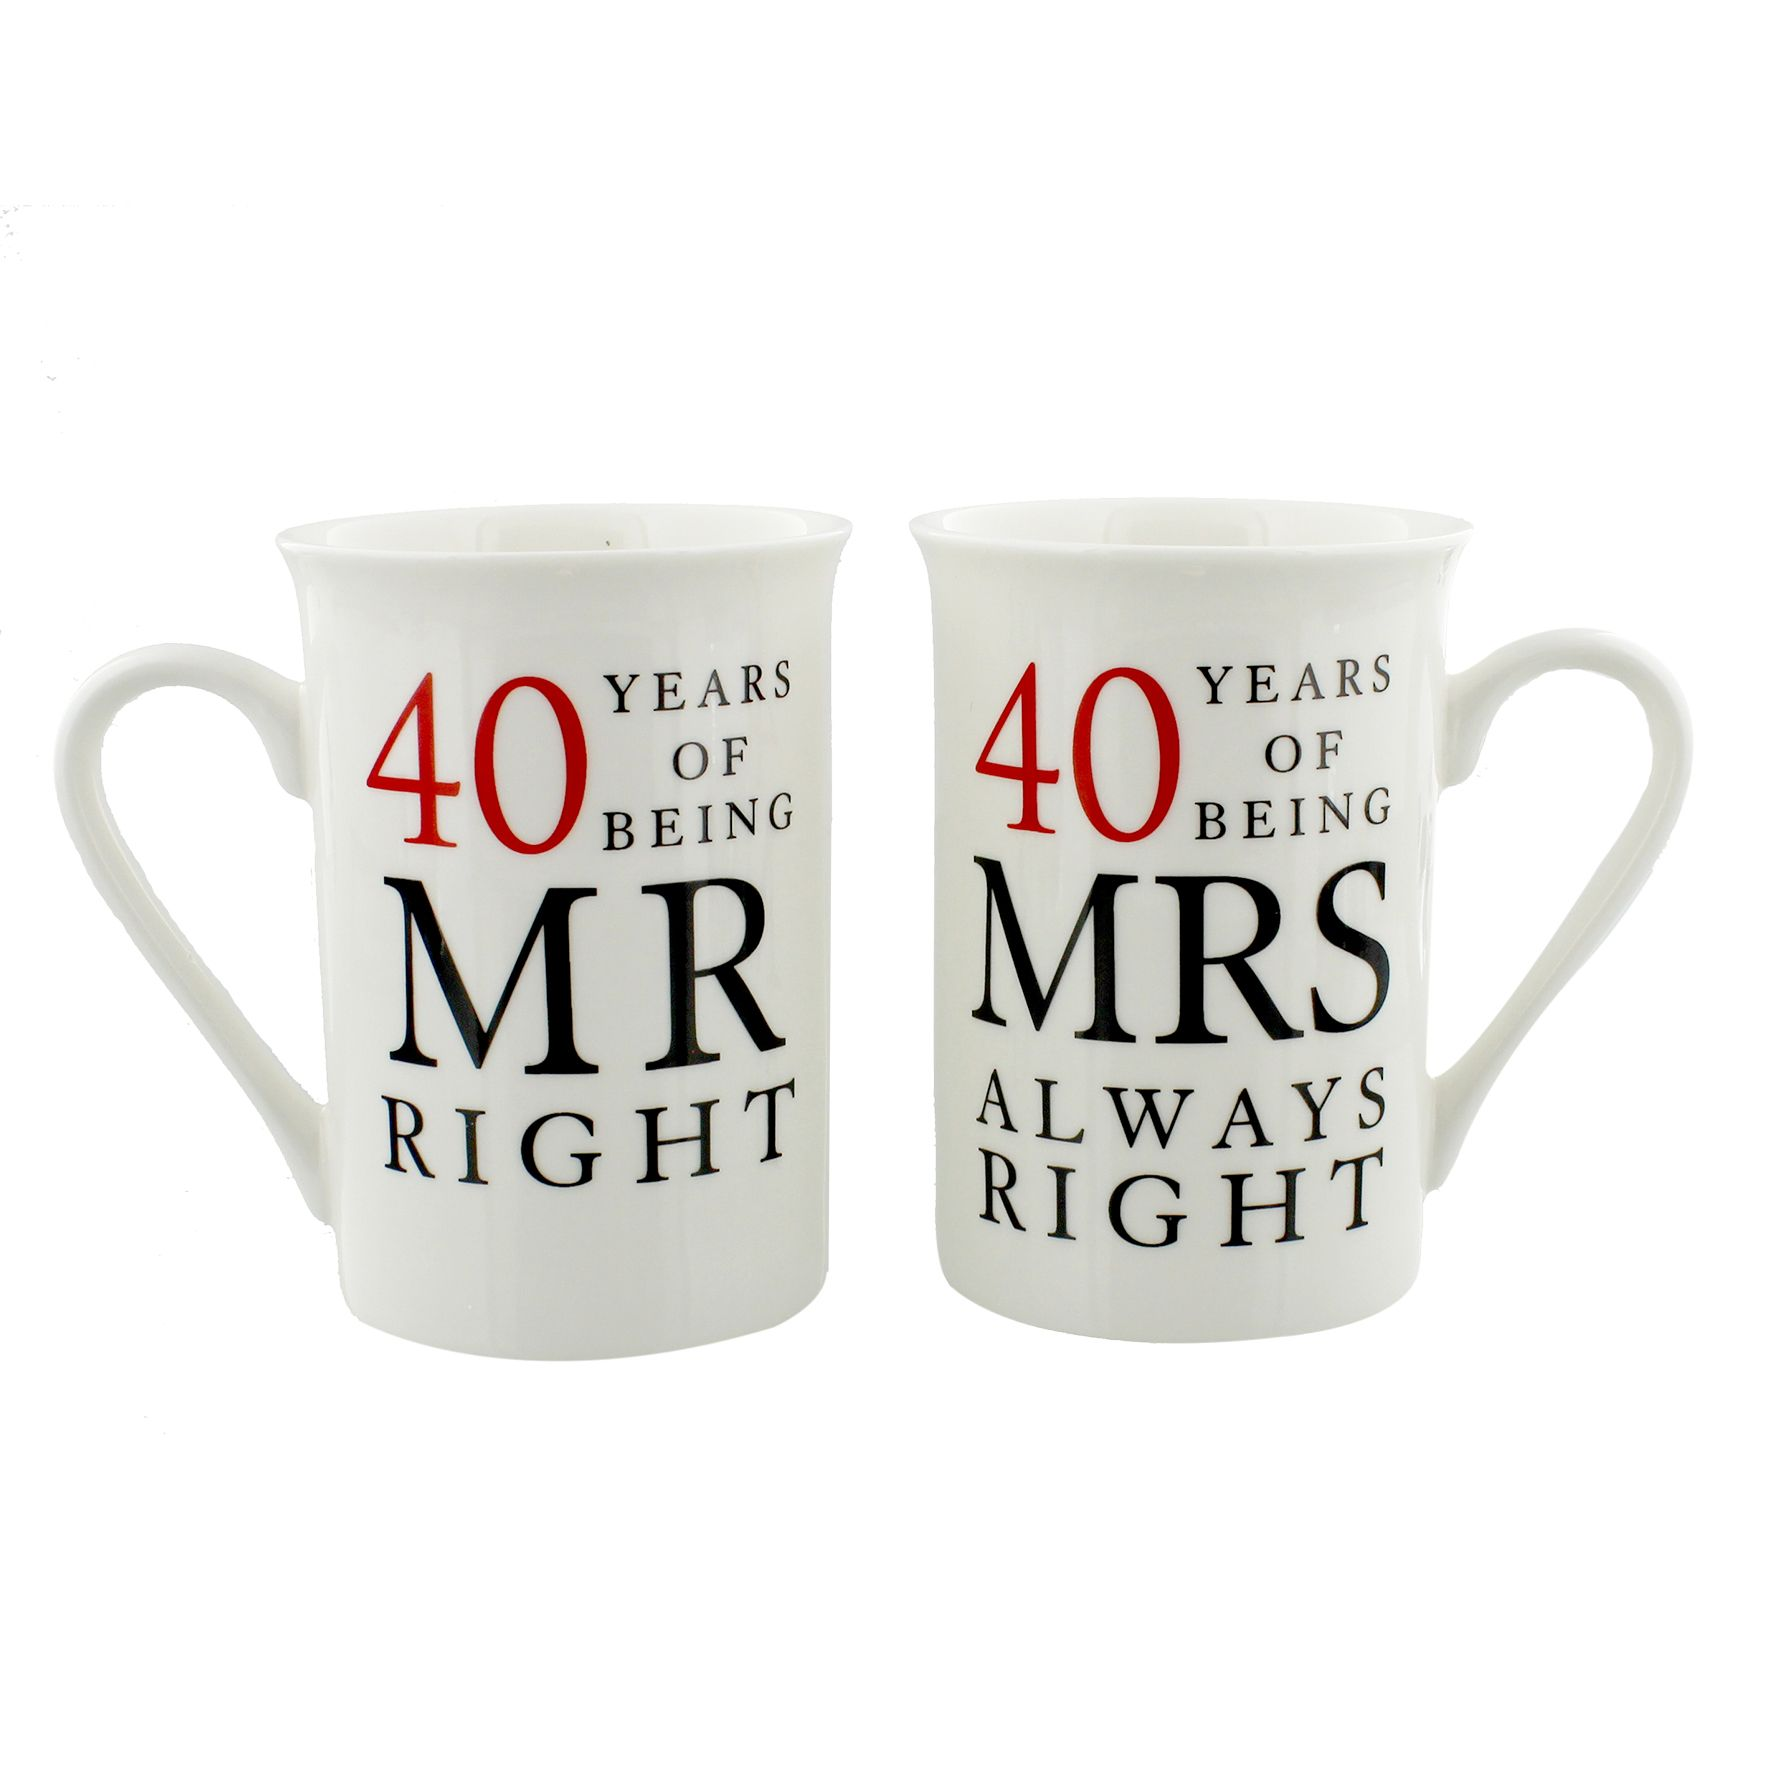 40 Year Wedding Anniversary Gift Ideas: 40th Ruby Wedding Anniversary Mr & Mrs Mug Gift Set